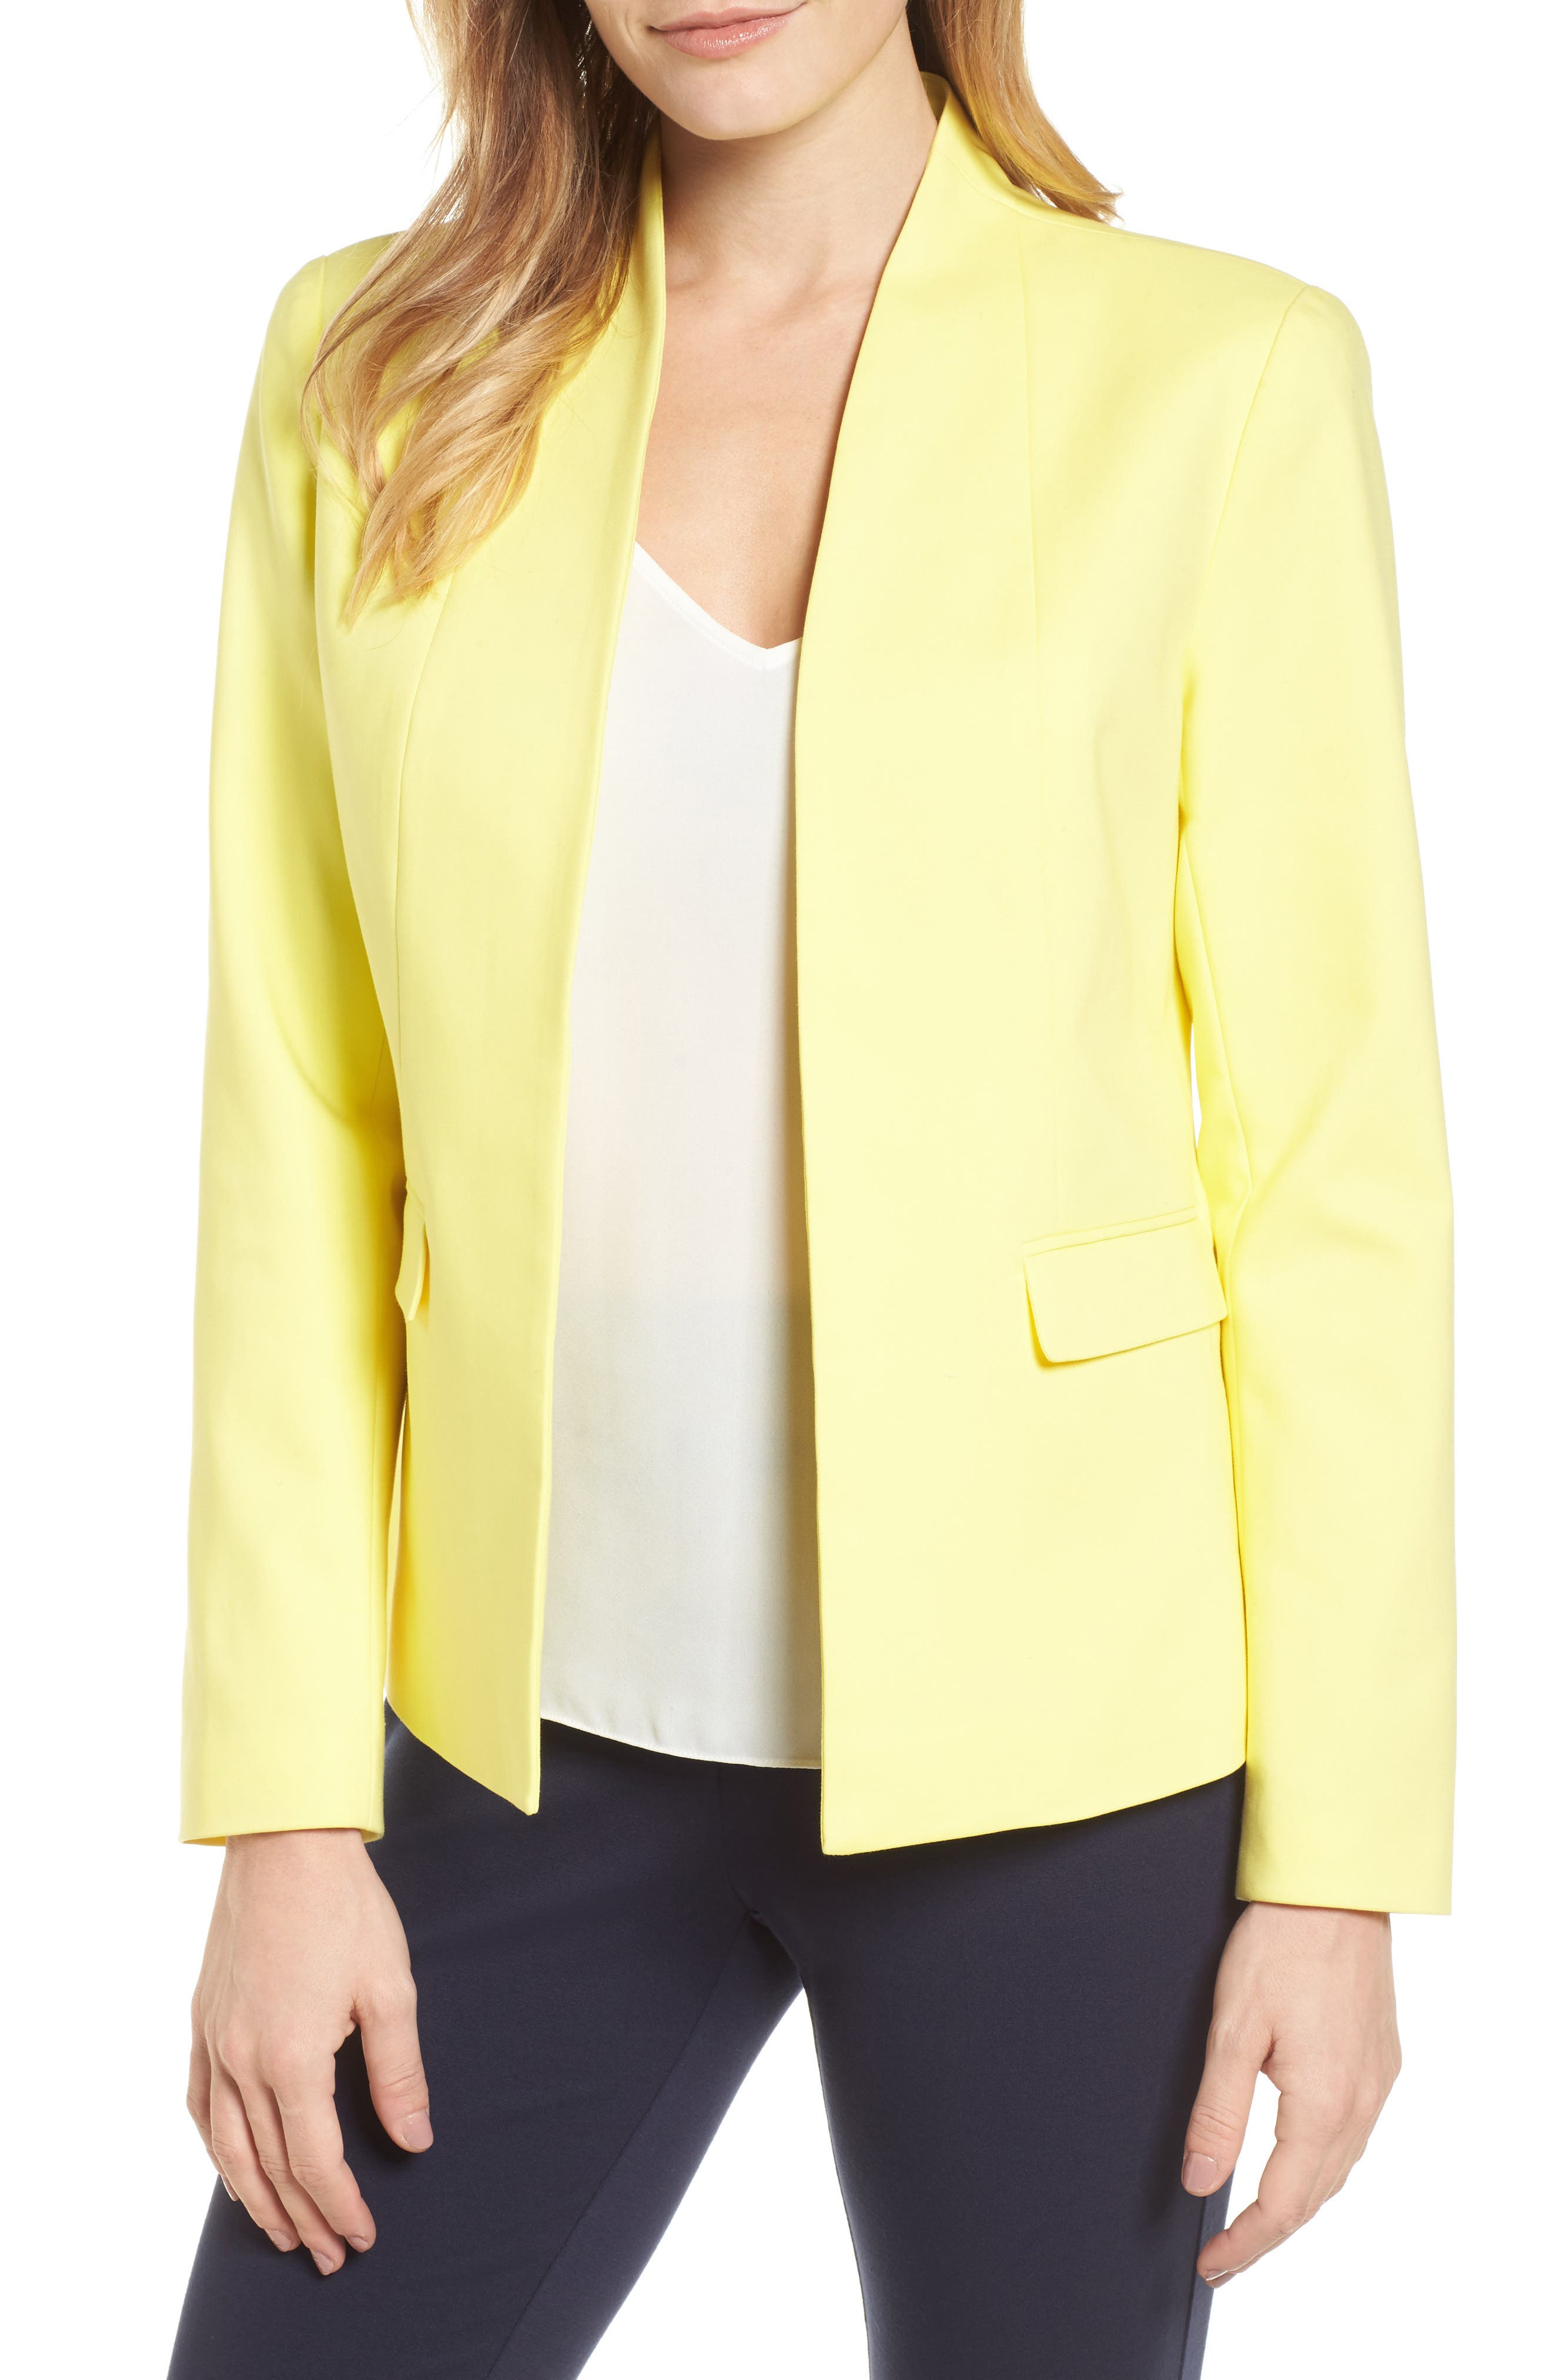 Stand Collar Jacket,                         Main,                         color, 784-Vivid Canary